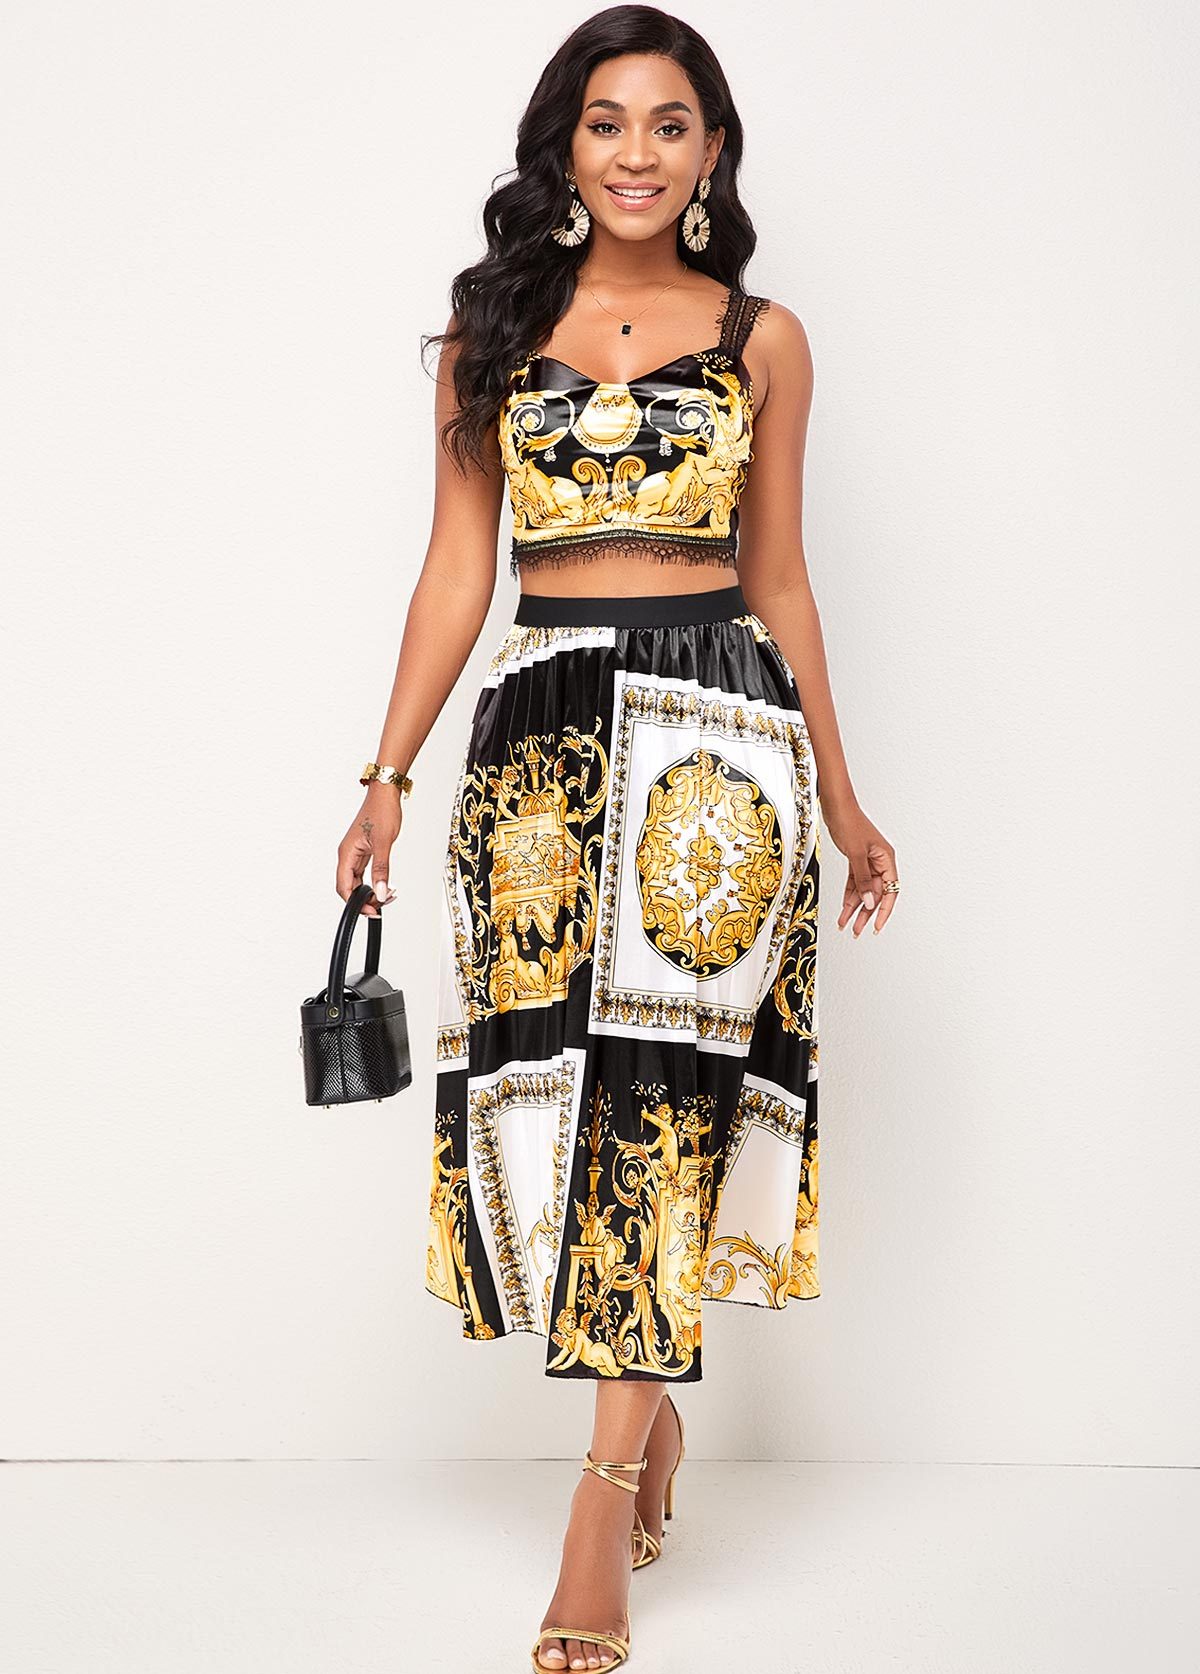 Lace Stitching Baroque Print Camisole Top and Skirt